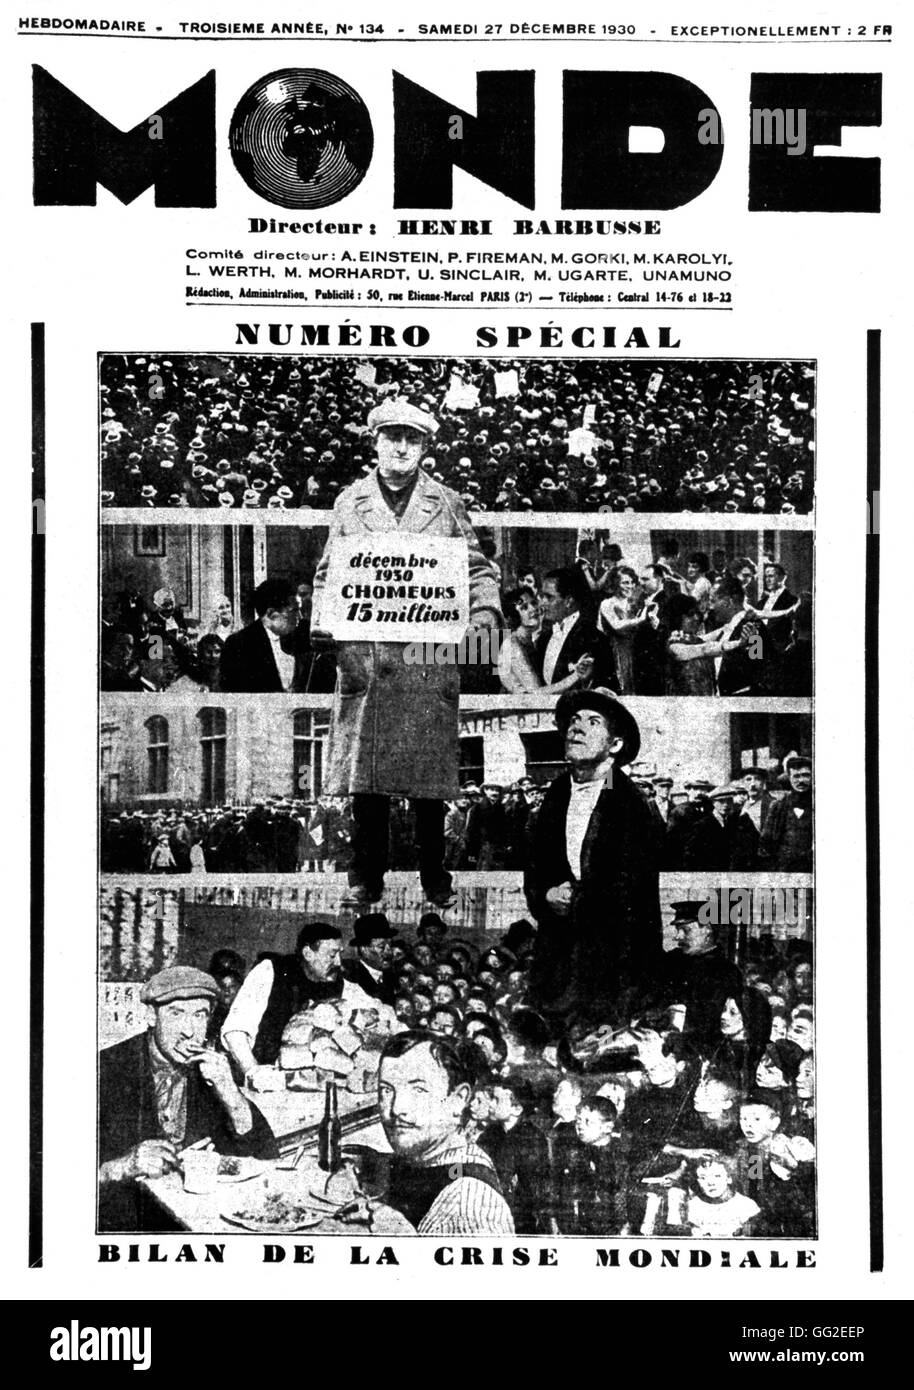 Special issue of the newspaper 'Monde' dated 12-27-1930: result of the world crisis France 1930 - Stock Image